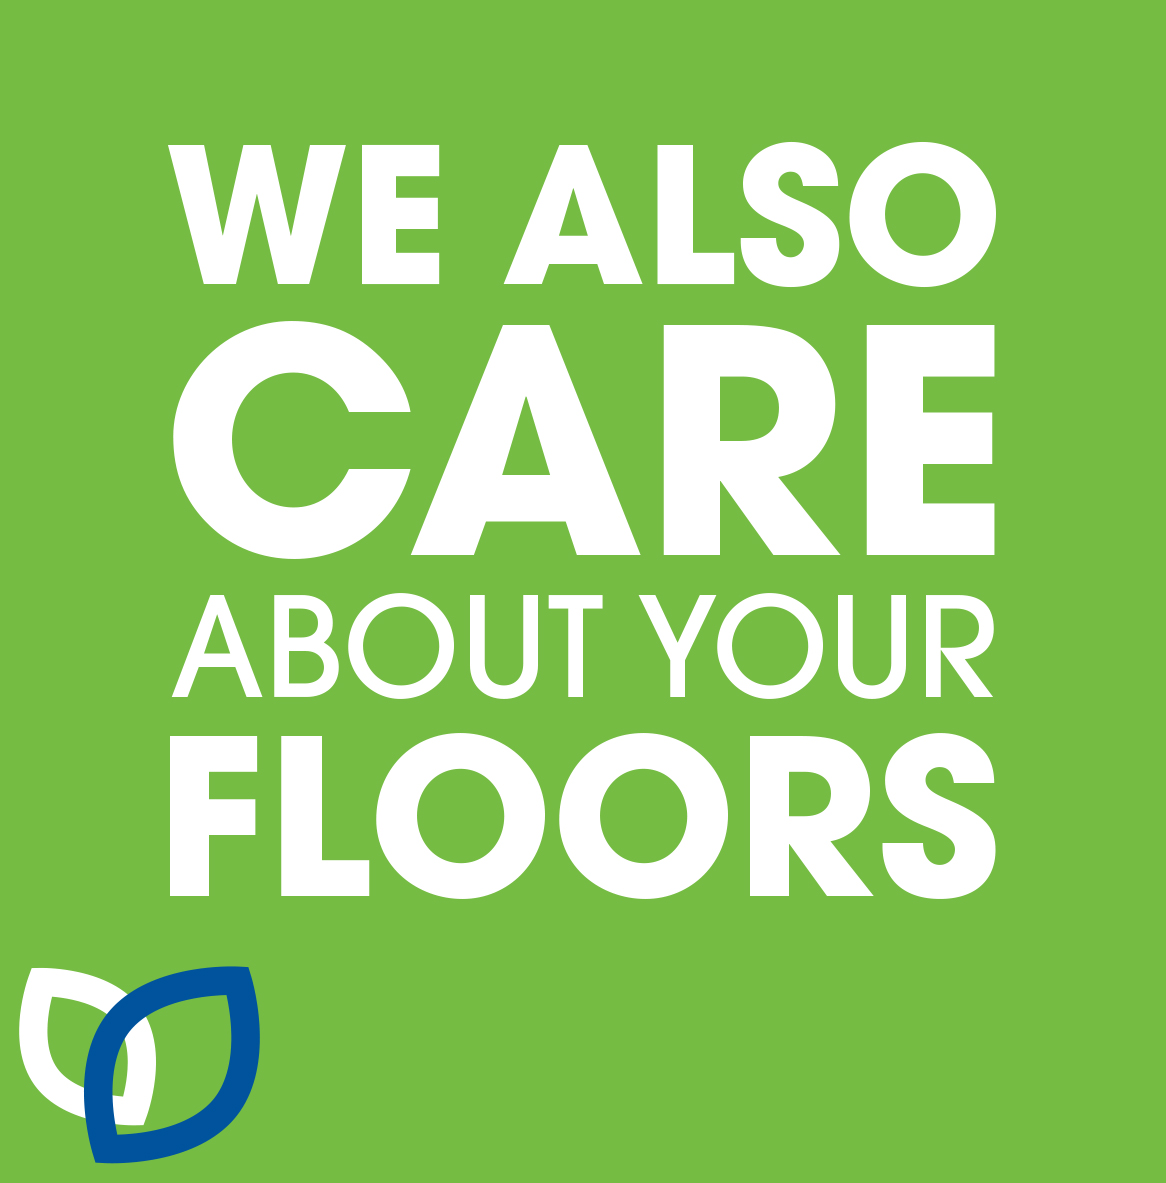 We also care about your floors - floorcare